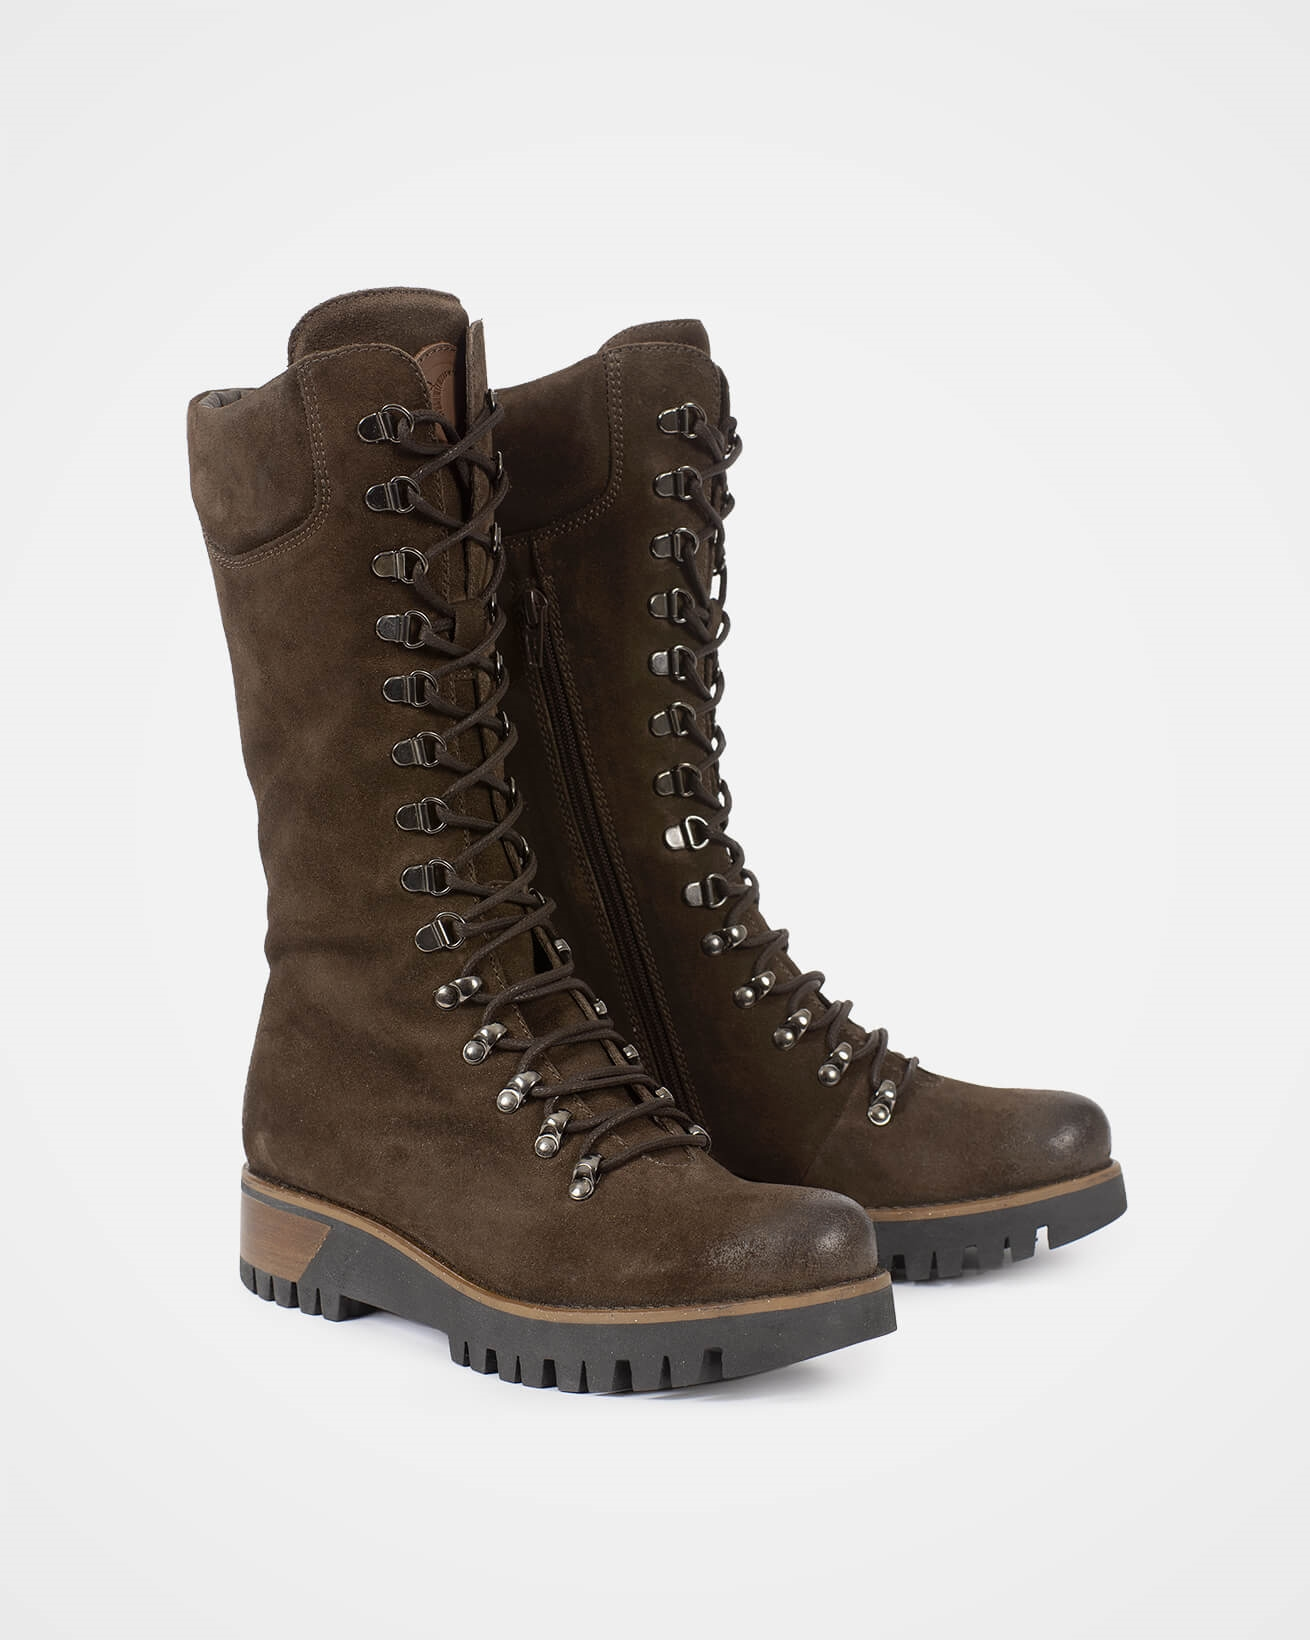 7082_wilderness-boots_tanners-brown_pair_v2_web.jpg